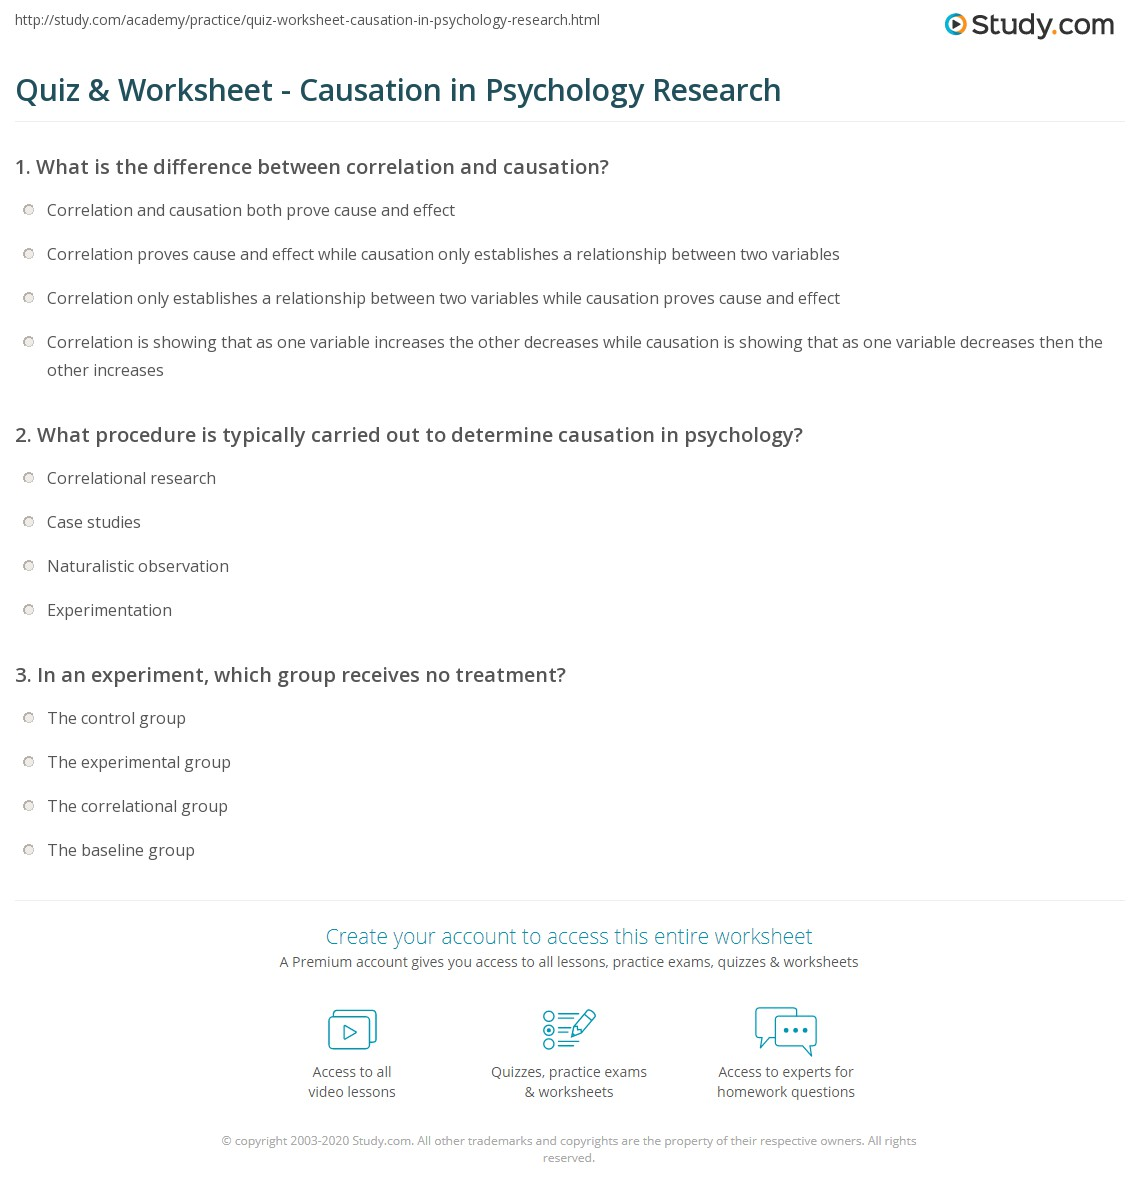 Quiz Worksheet Causation In Psychology Research Study